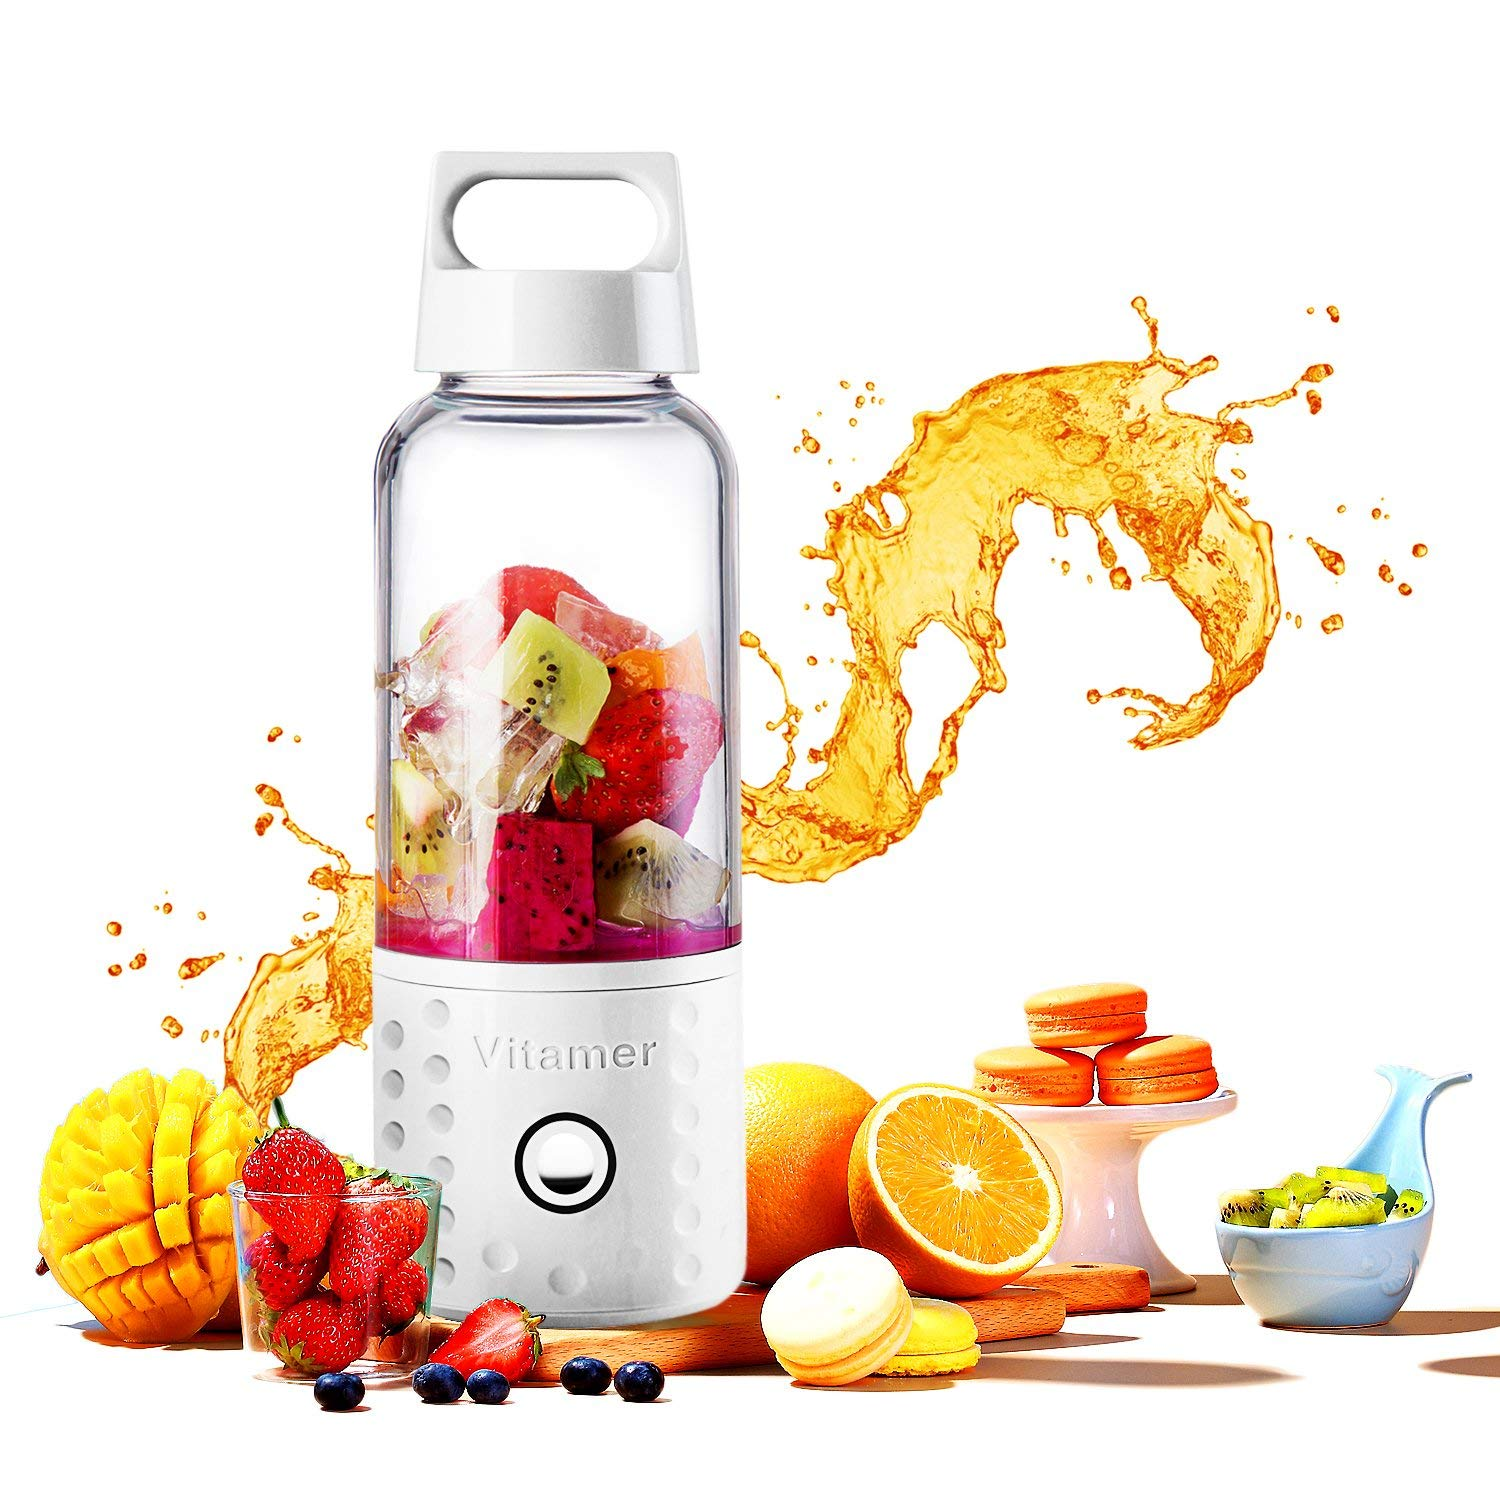 Portable Blender, Smoothie Blender USB Juicer Cup, 17oz Fruit Mixing Machine with 4000mAh Rechargeable Batteries, Detachable CPortable Blender, Smoothie Blender USB Juicer Cup, 17oz Fruit Mixing Machine with 4000mAh Rechargeable Batteries, Detachable C